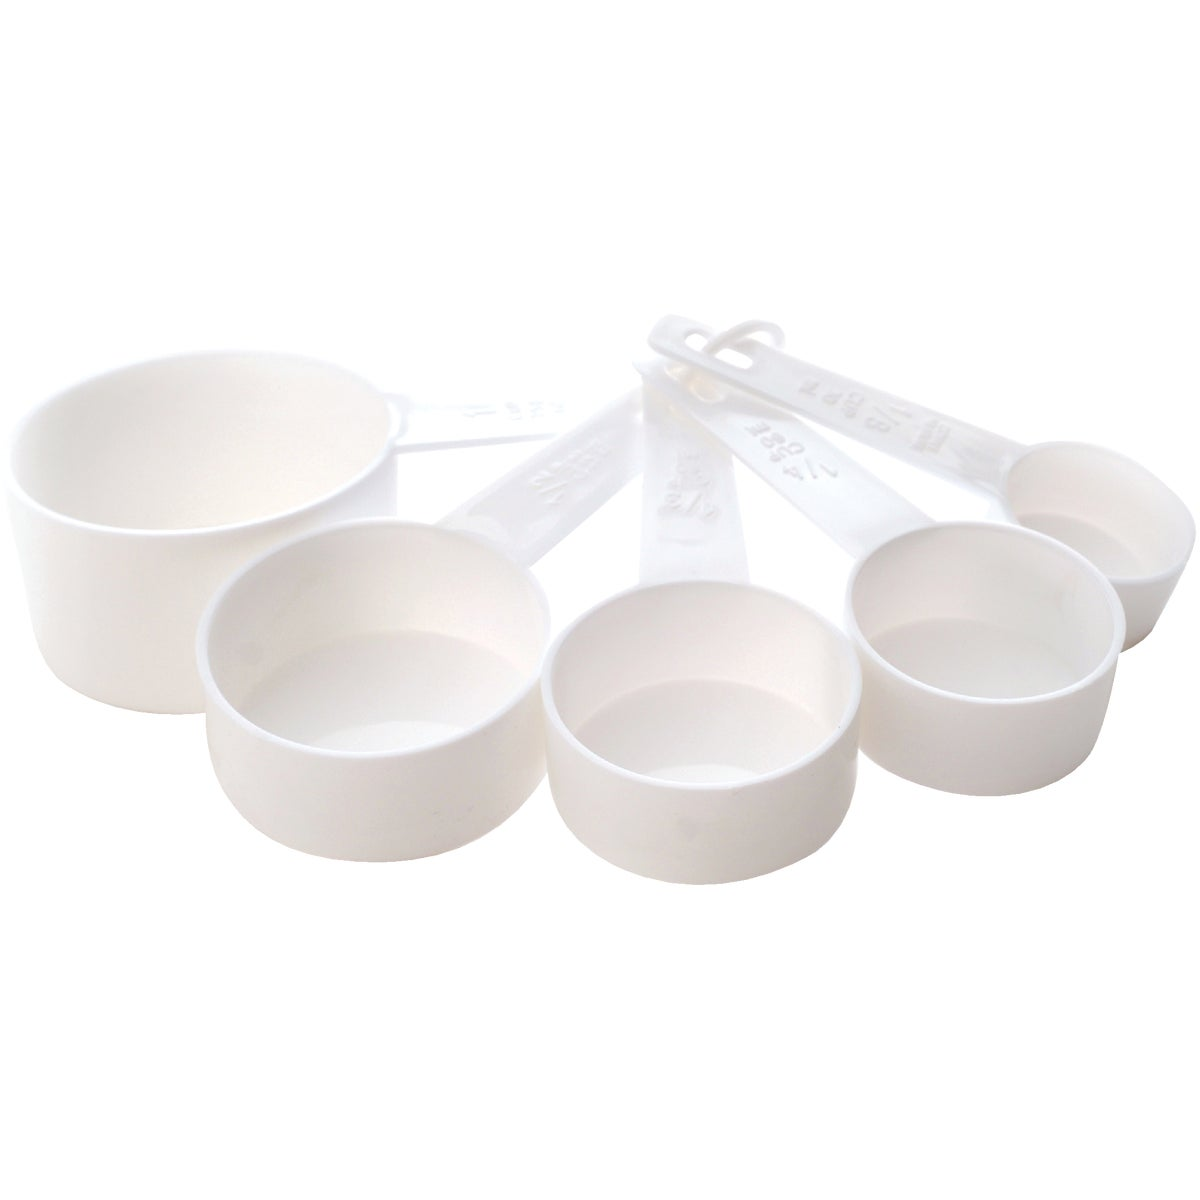 5PC WHITE MEASURING CUP - 3044W by Norpro